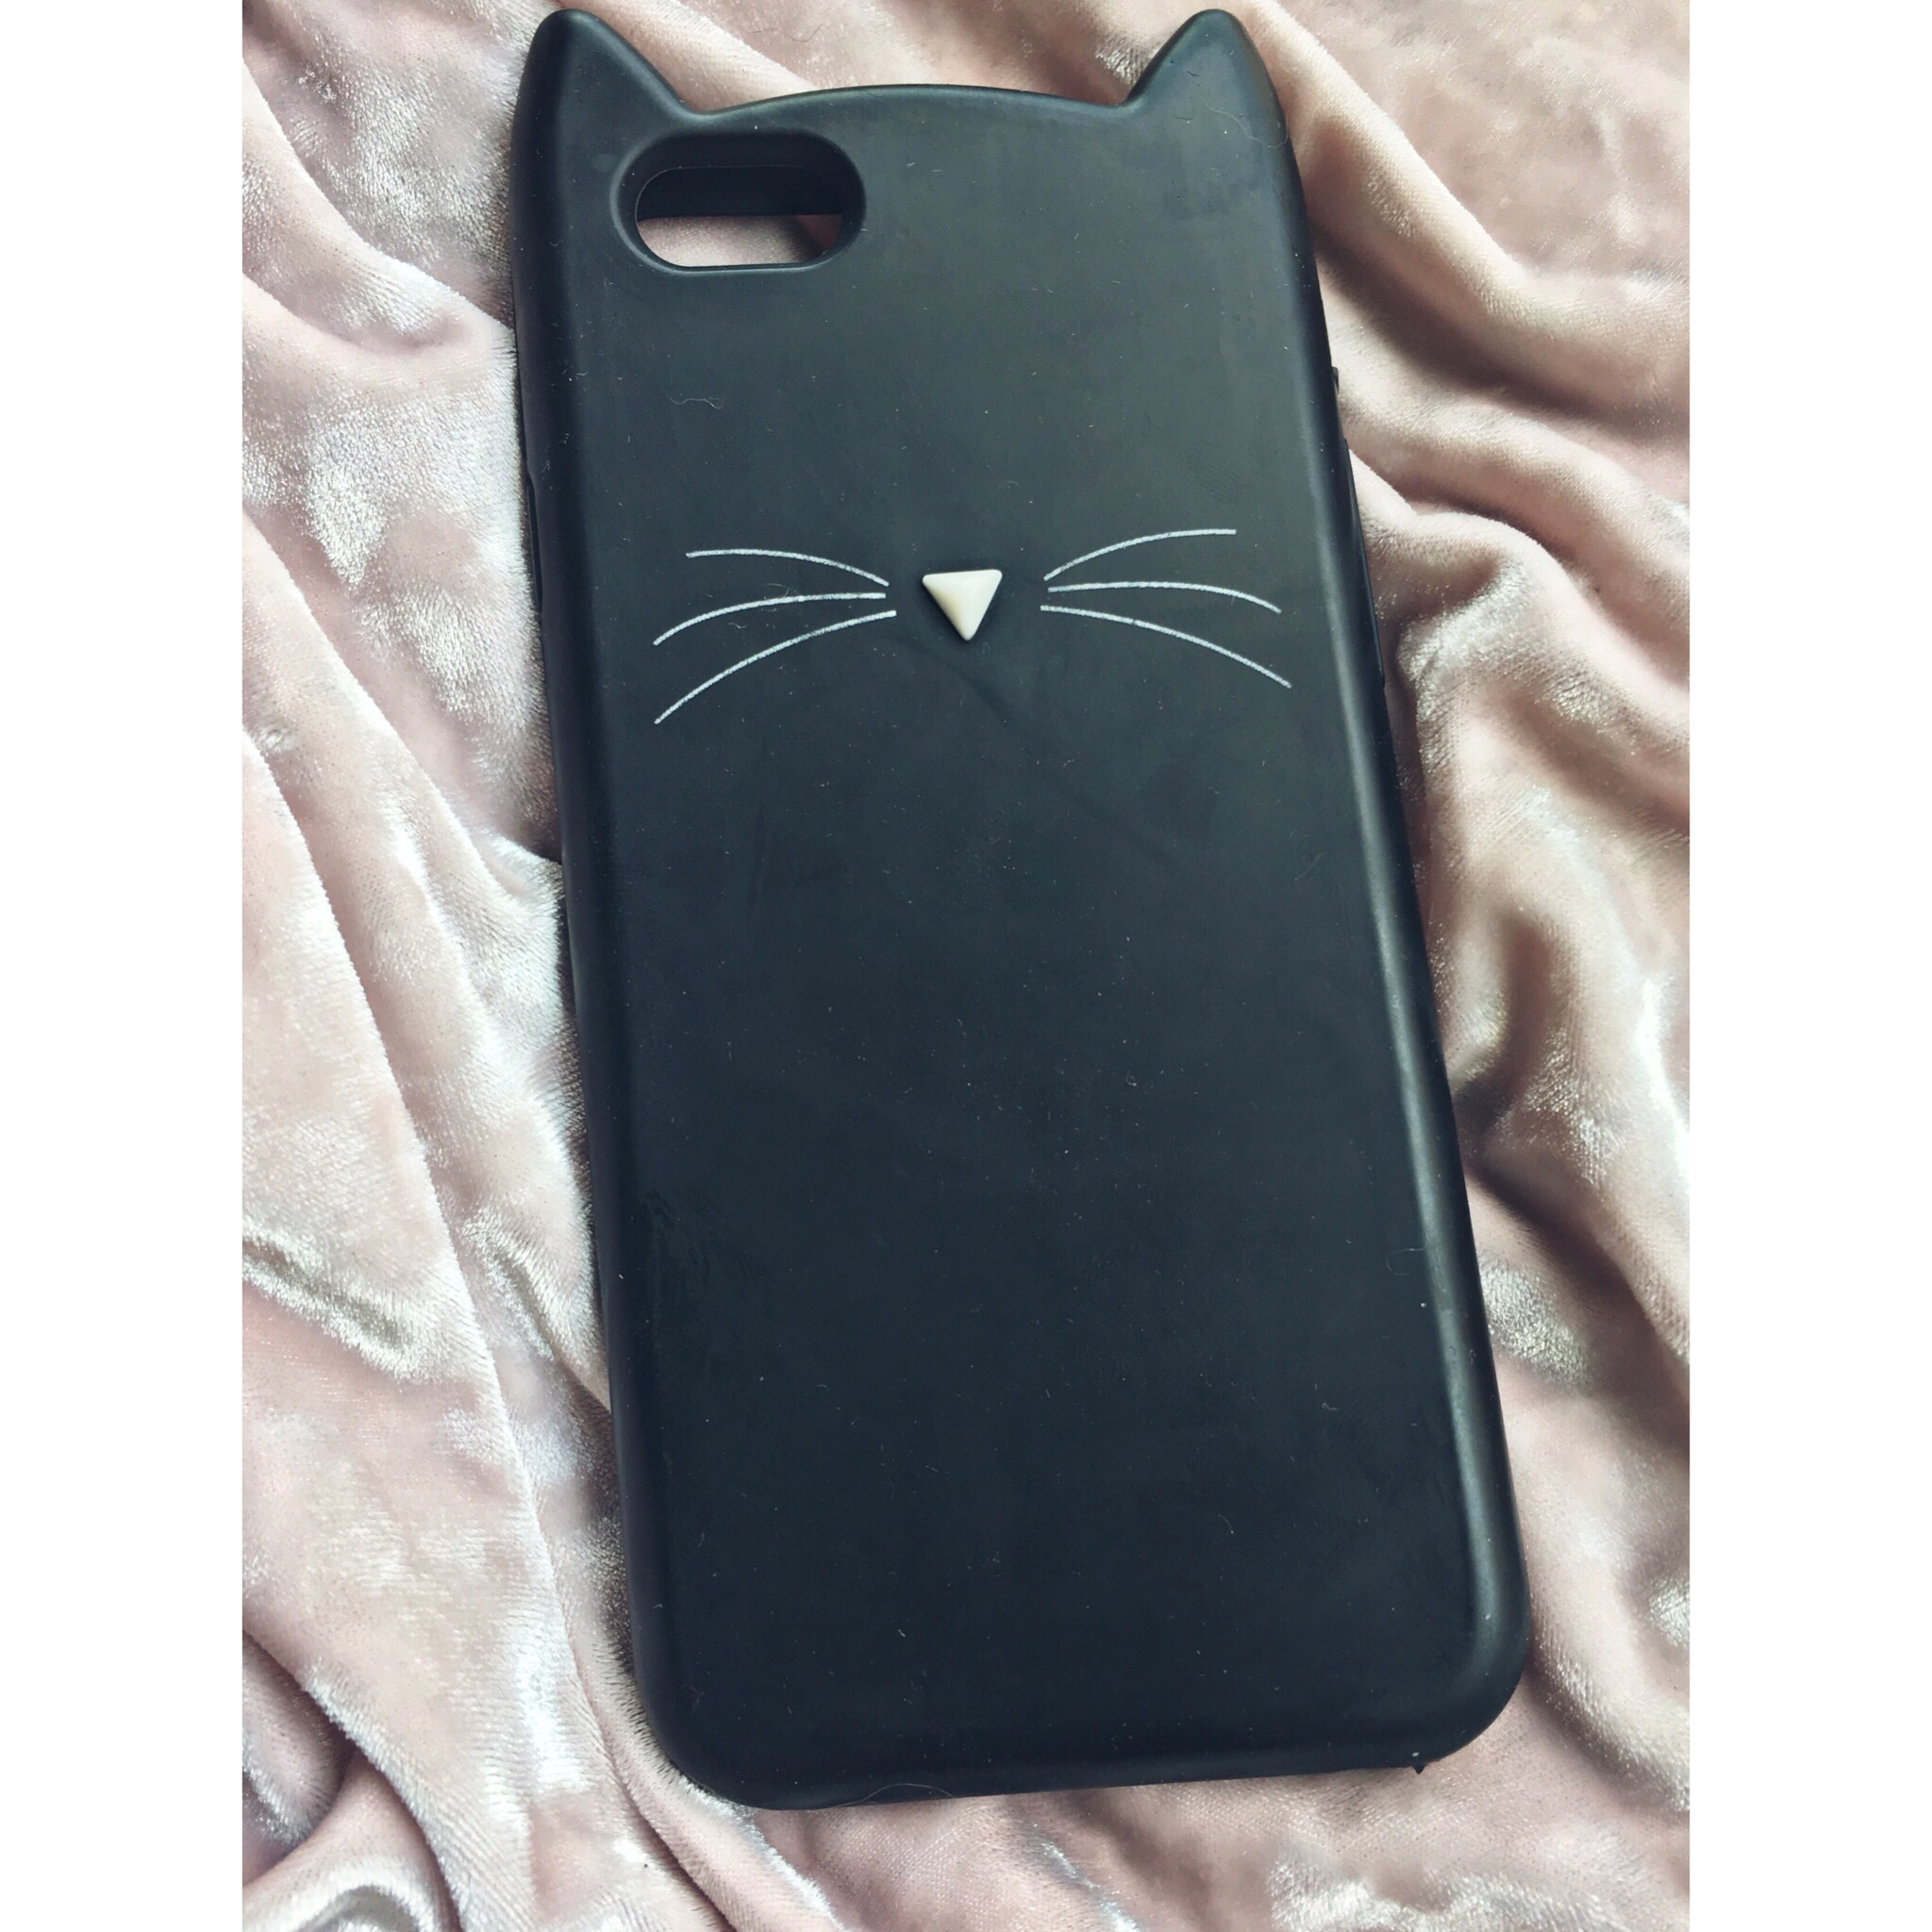 reputable site 5e969 ae61a Kitty Cat Phone Case. Simple rubber phone case,... - Depop